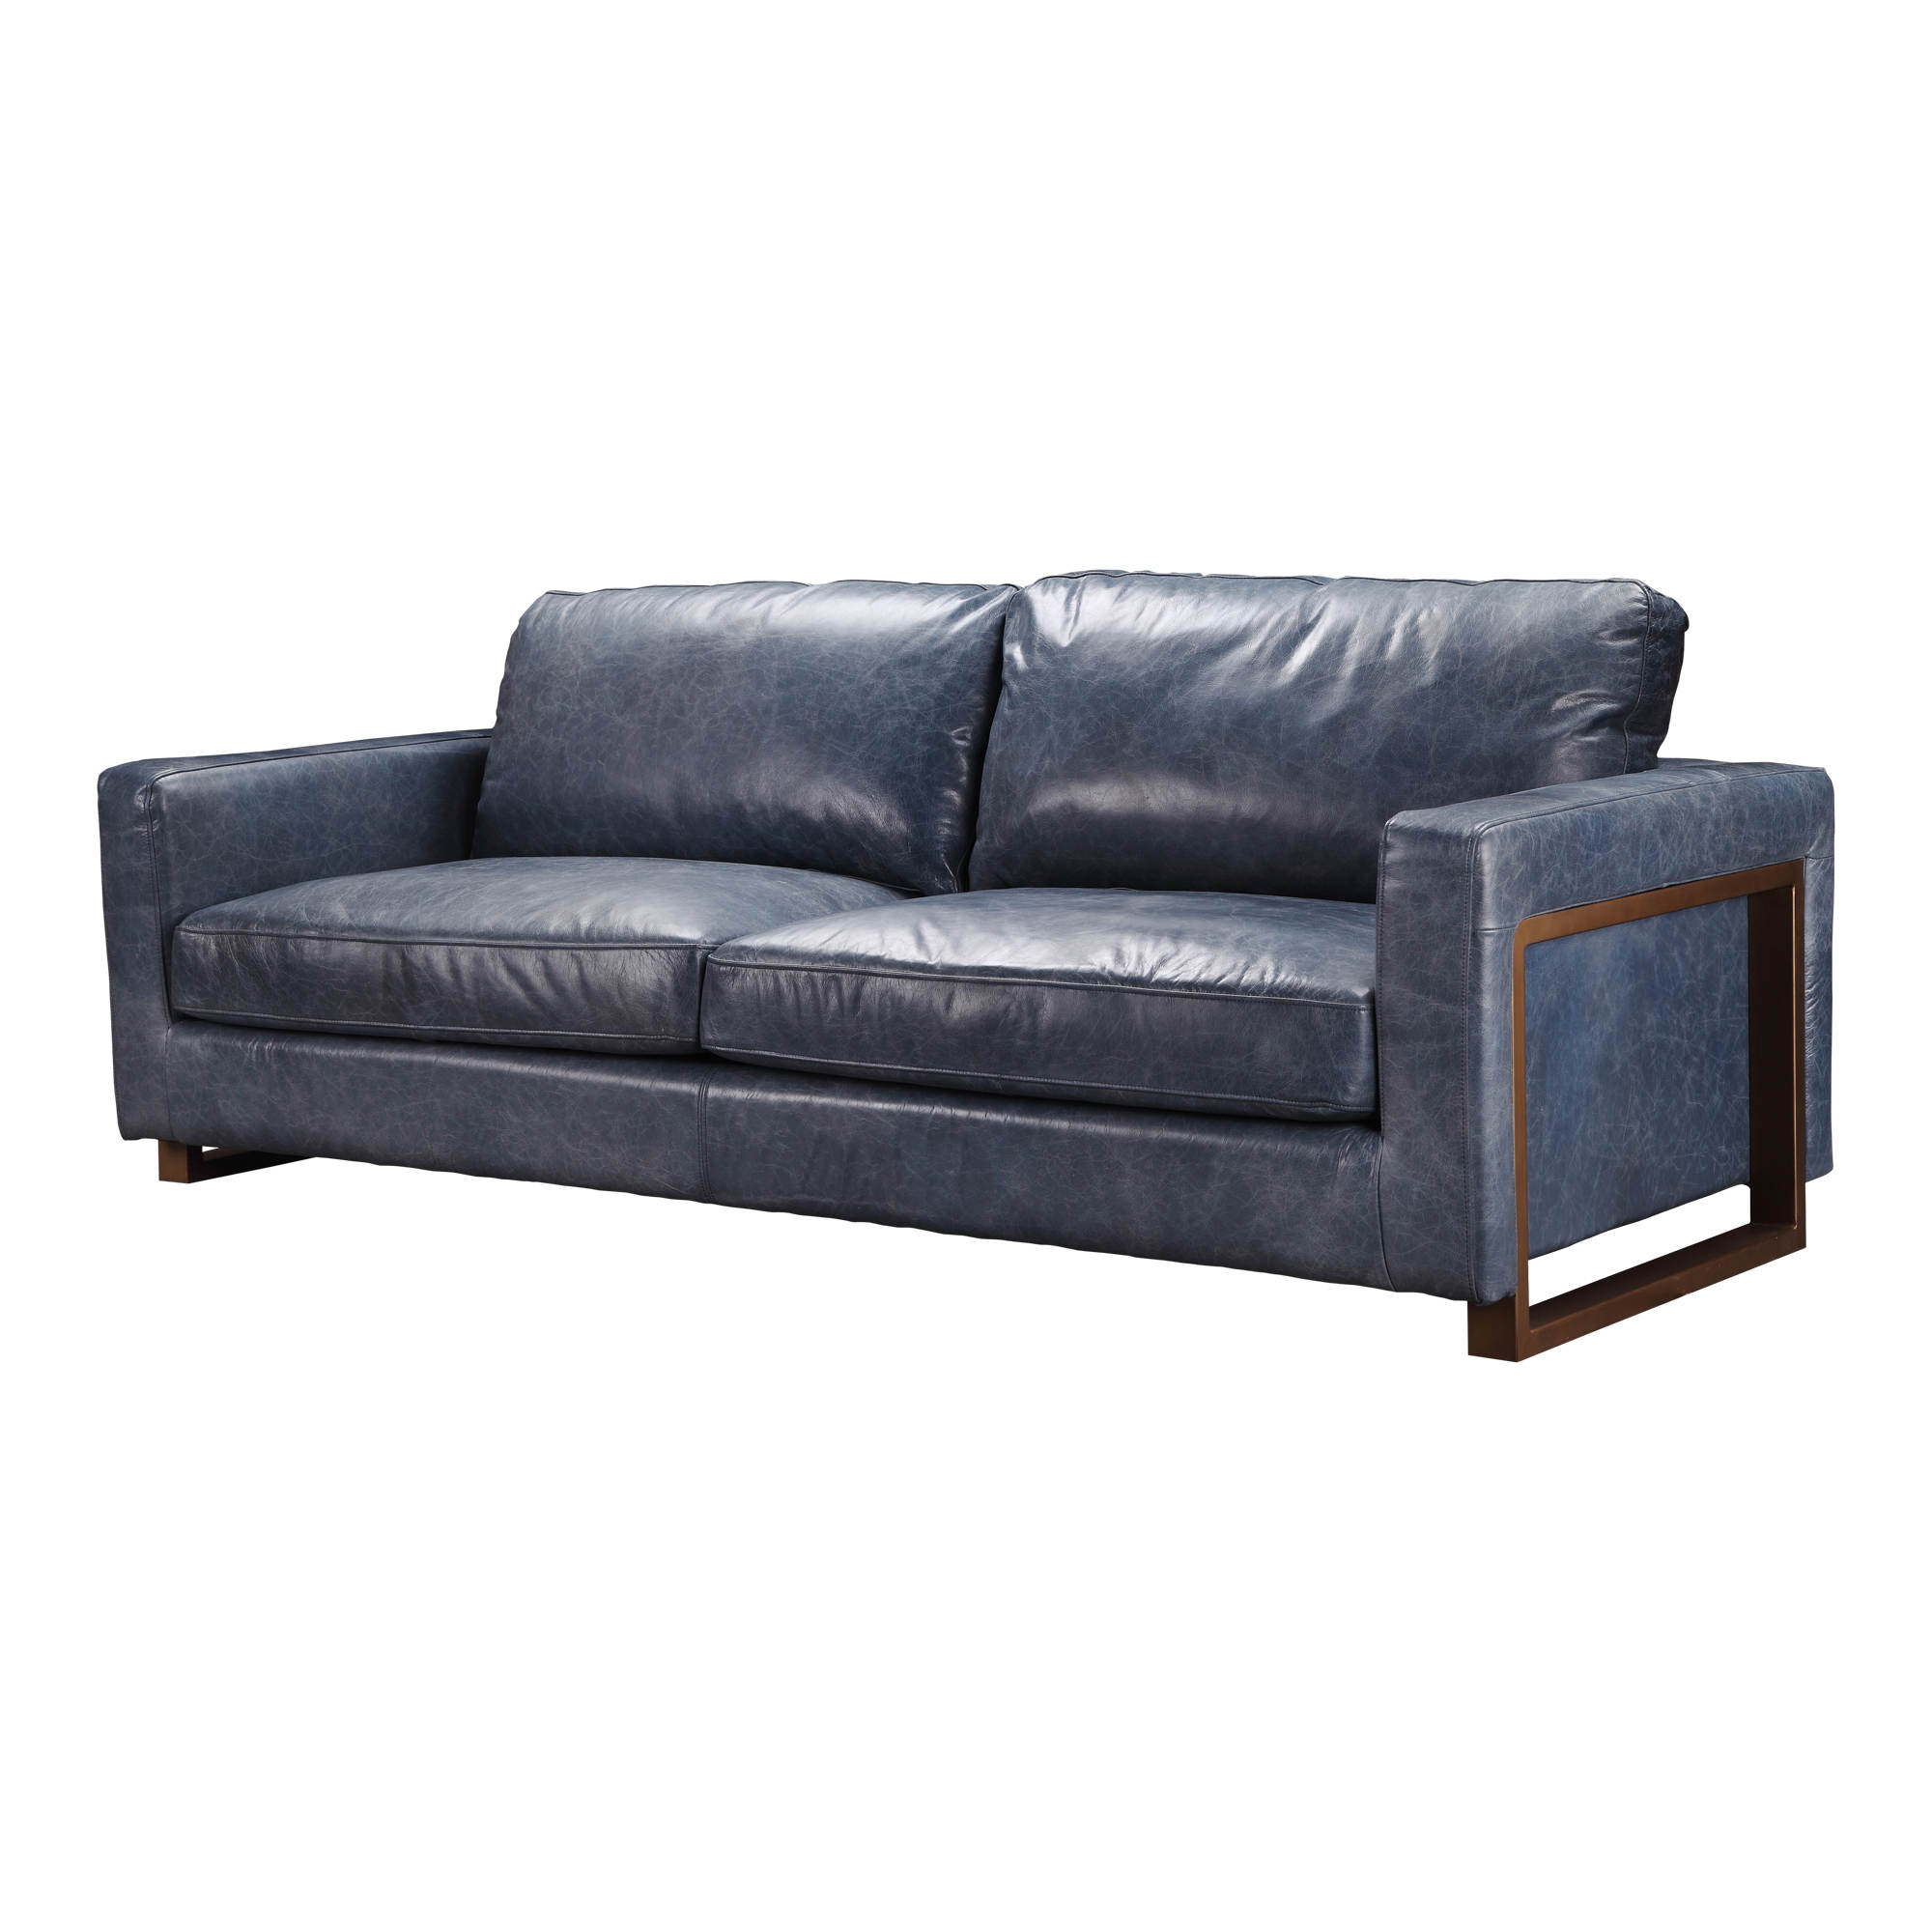 Nikoly Navy Blue Grain Leather Sofa